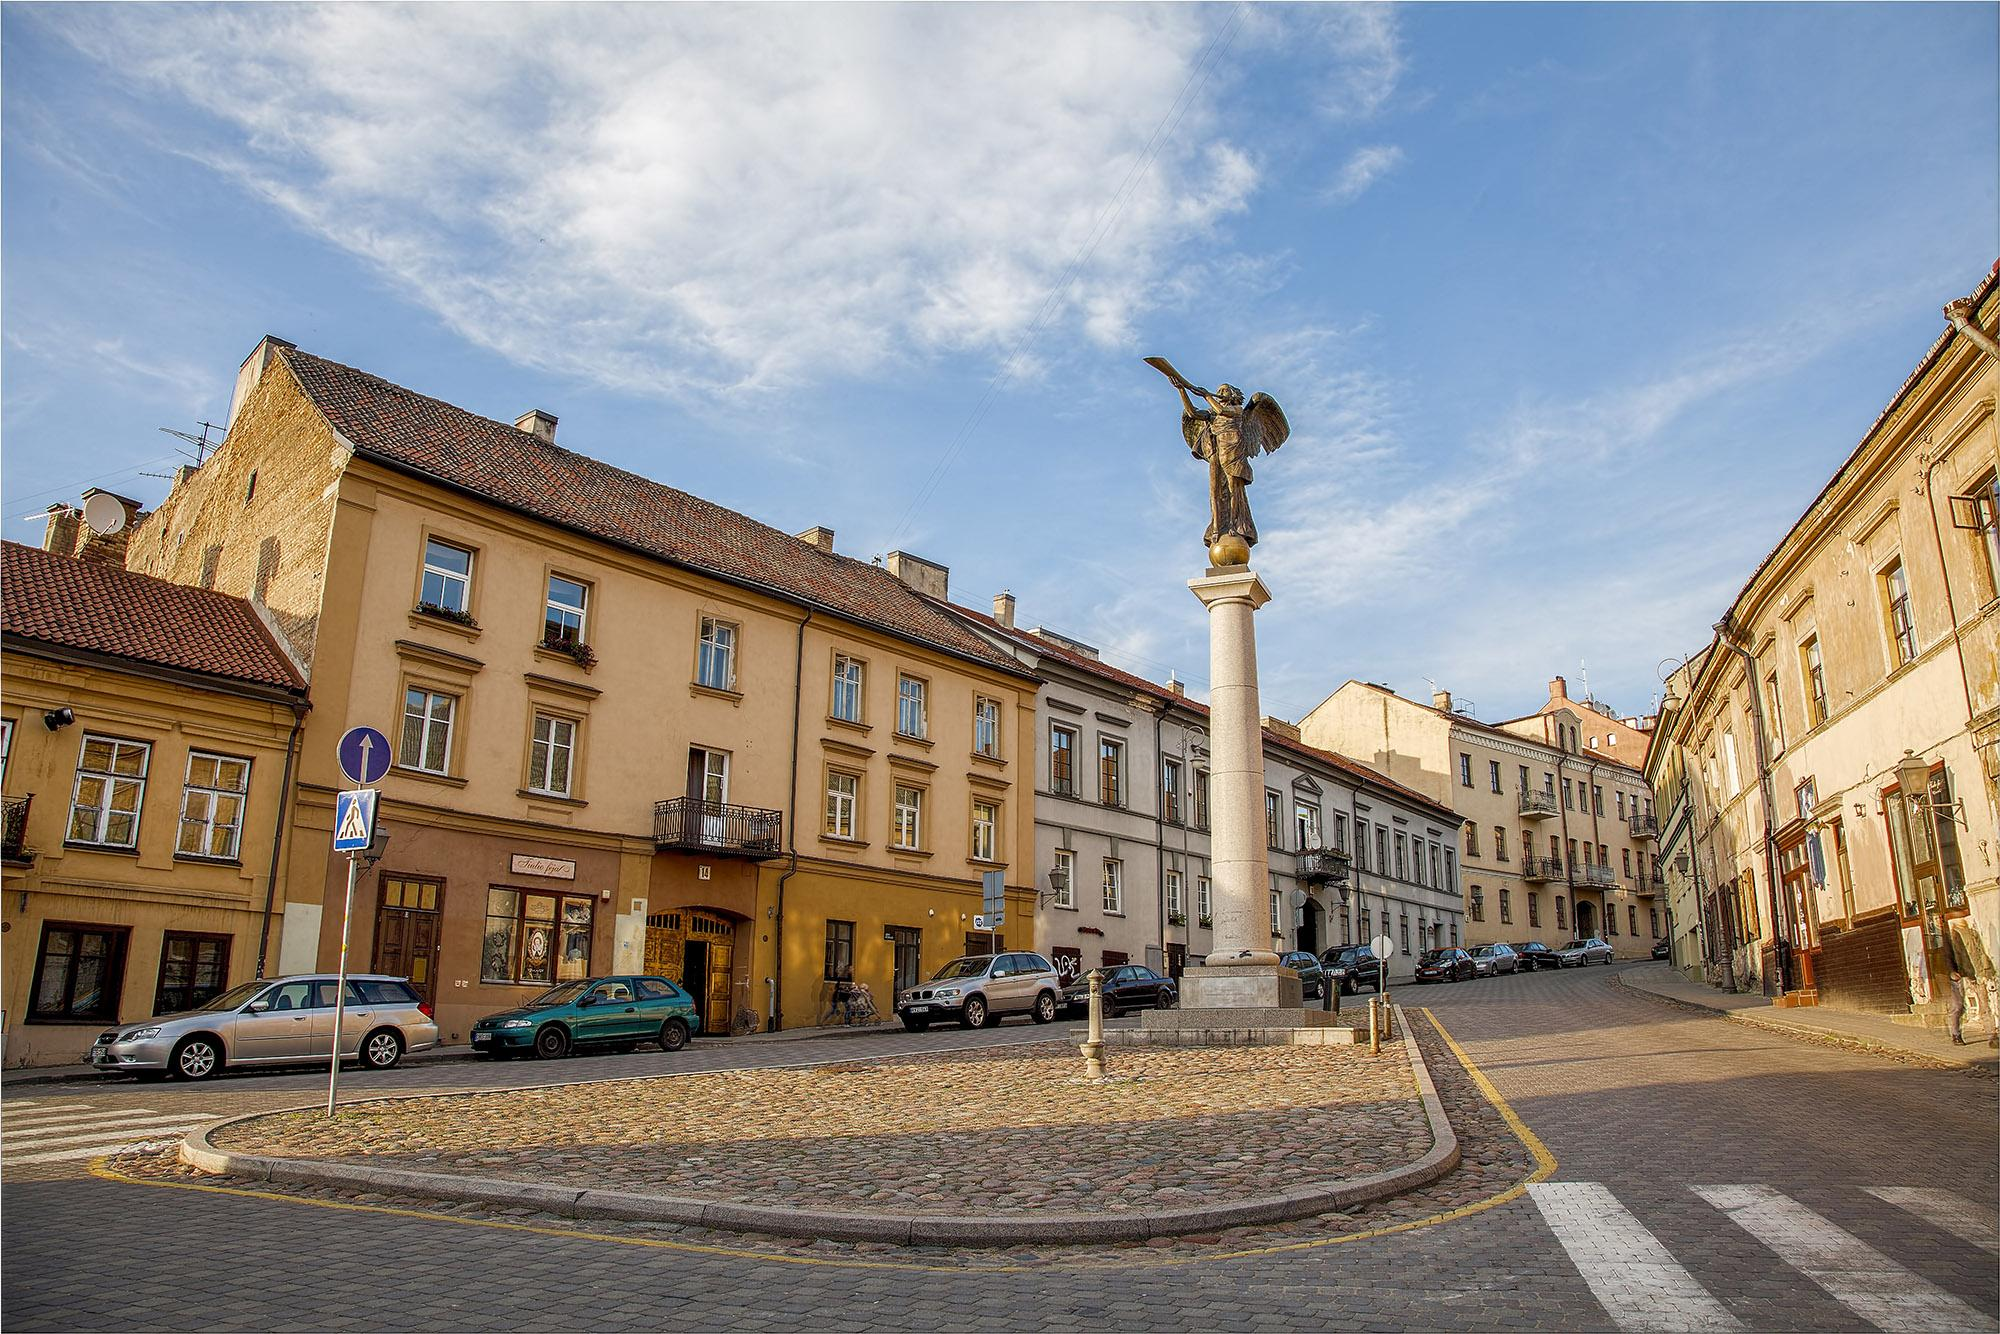 A sculpture of a bronze angel was placed in the central square of Užupis in 2002. It has become the district's symbol. – © Laimonas Ciūnys / www.vilnius-tourism.lt